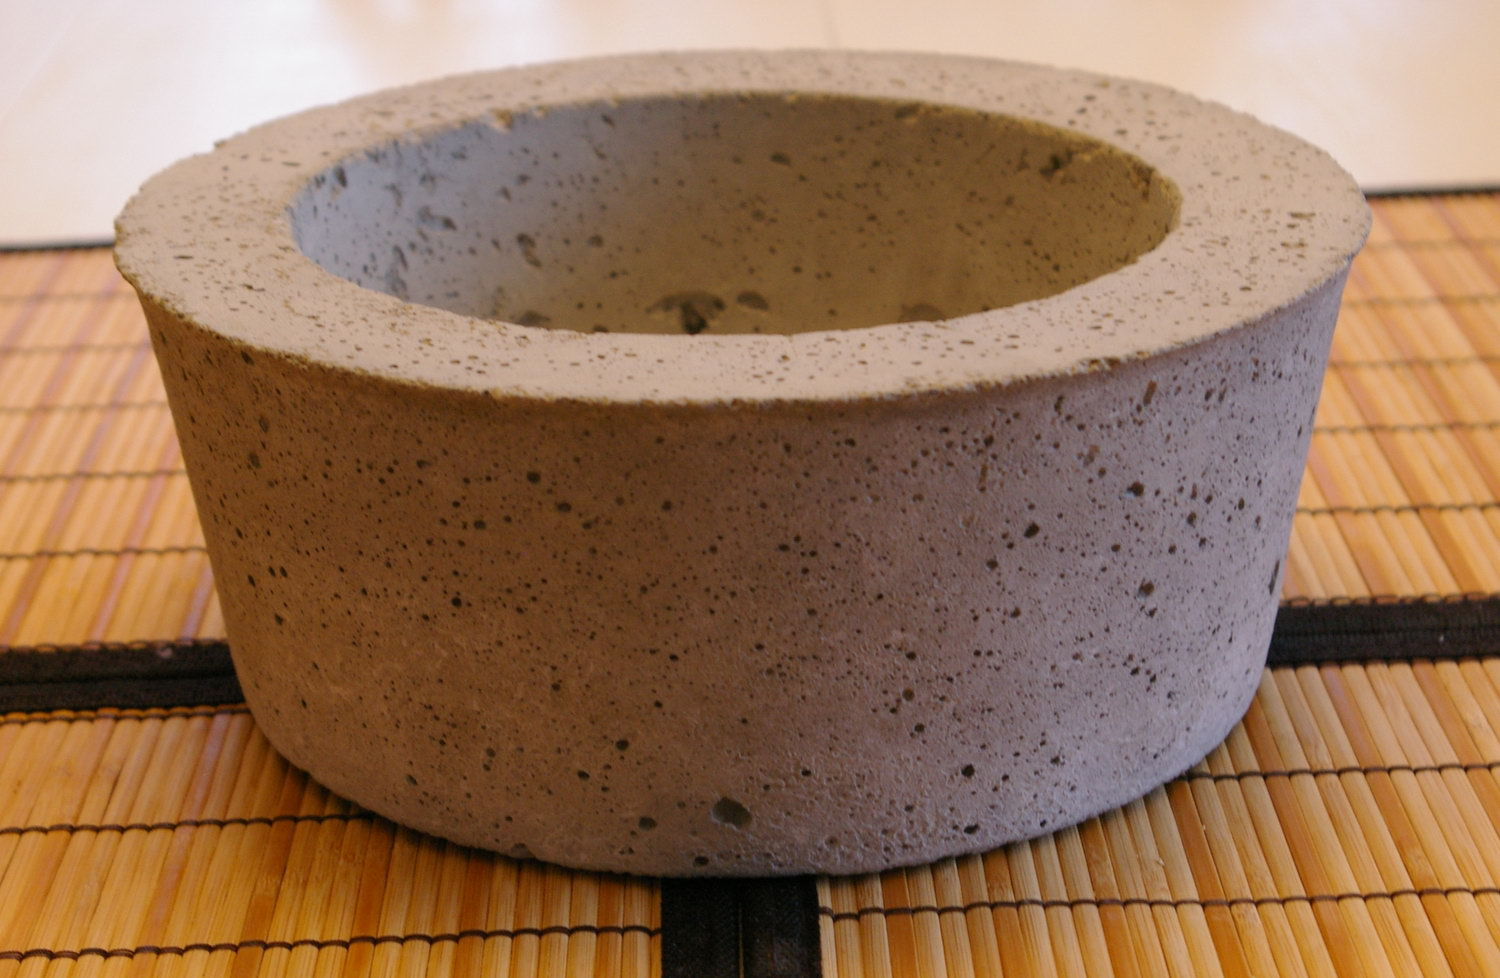 How To Make Concrete Pots Part 2 Life As A Human